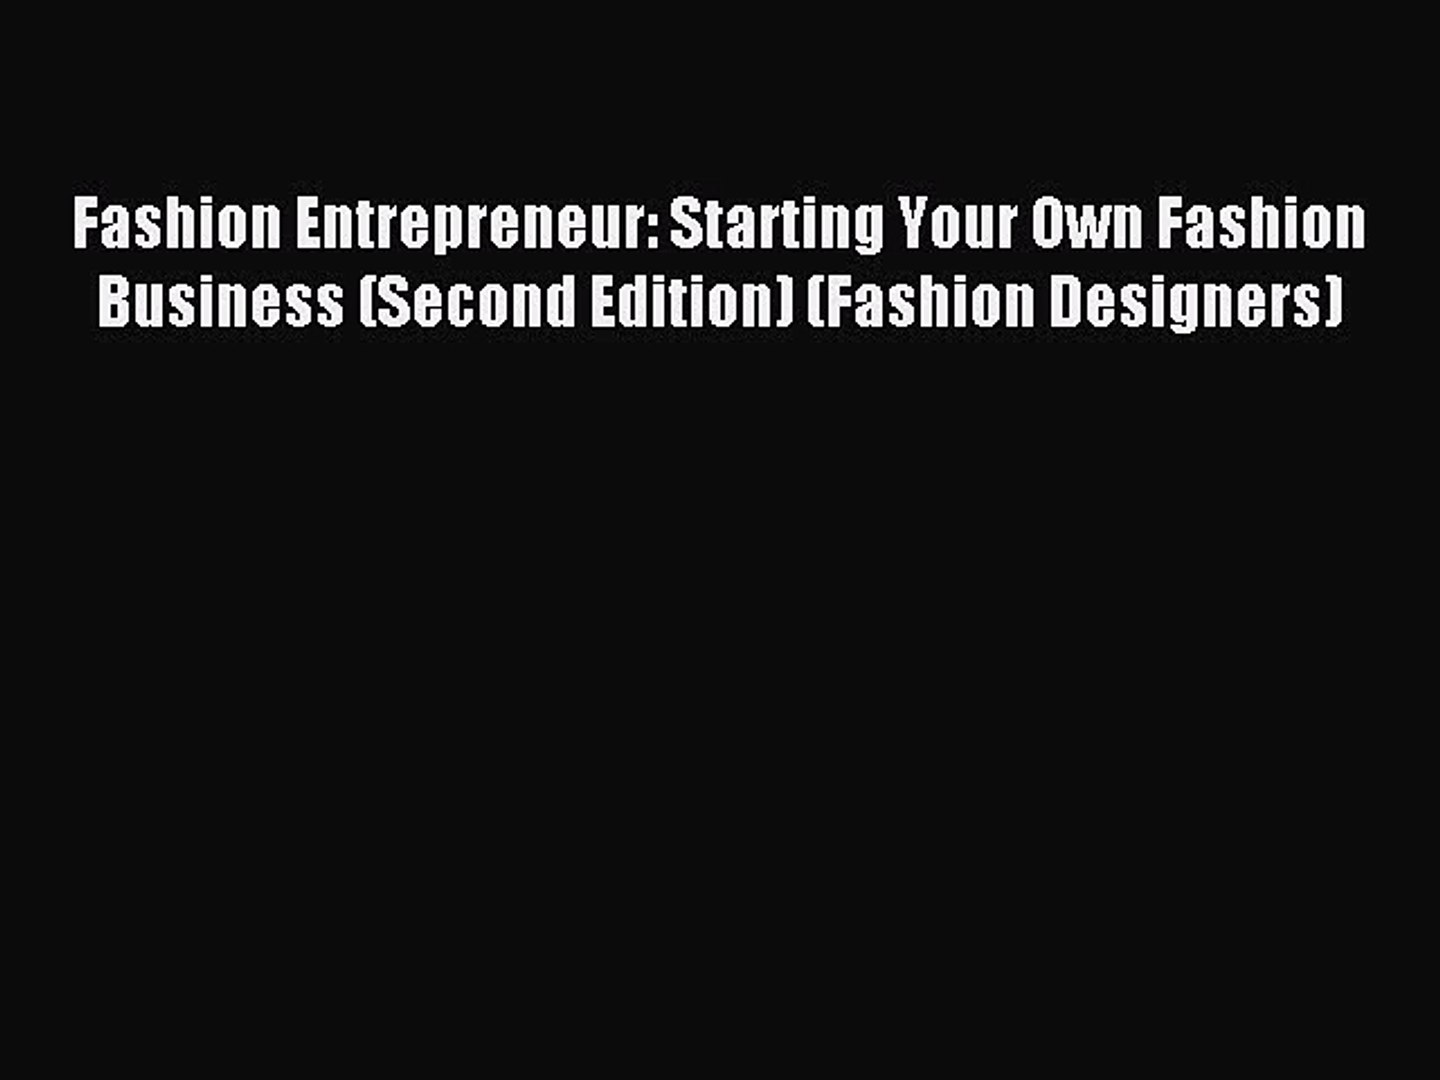 Read Fashion Entrepreneur: Starting Your Own Fashion Business (Second Edition) (Fashion Designers)